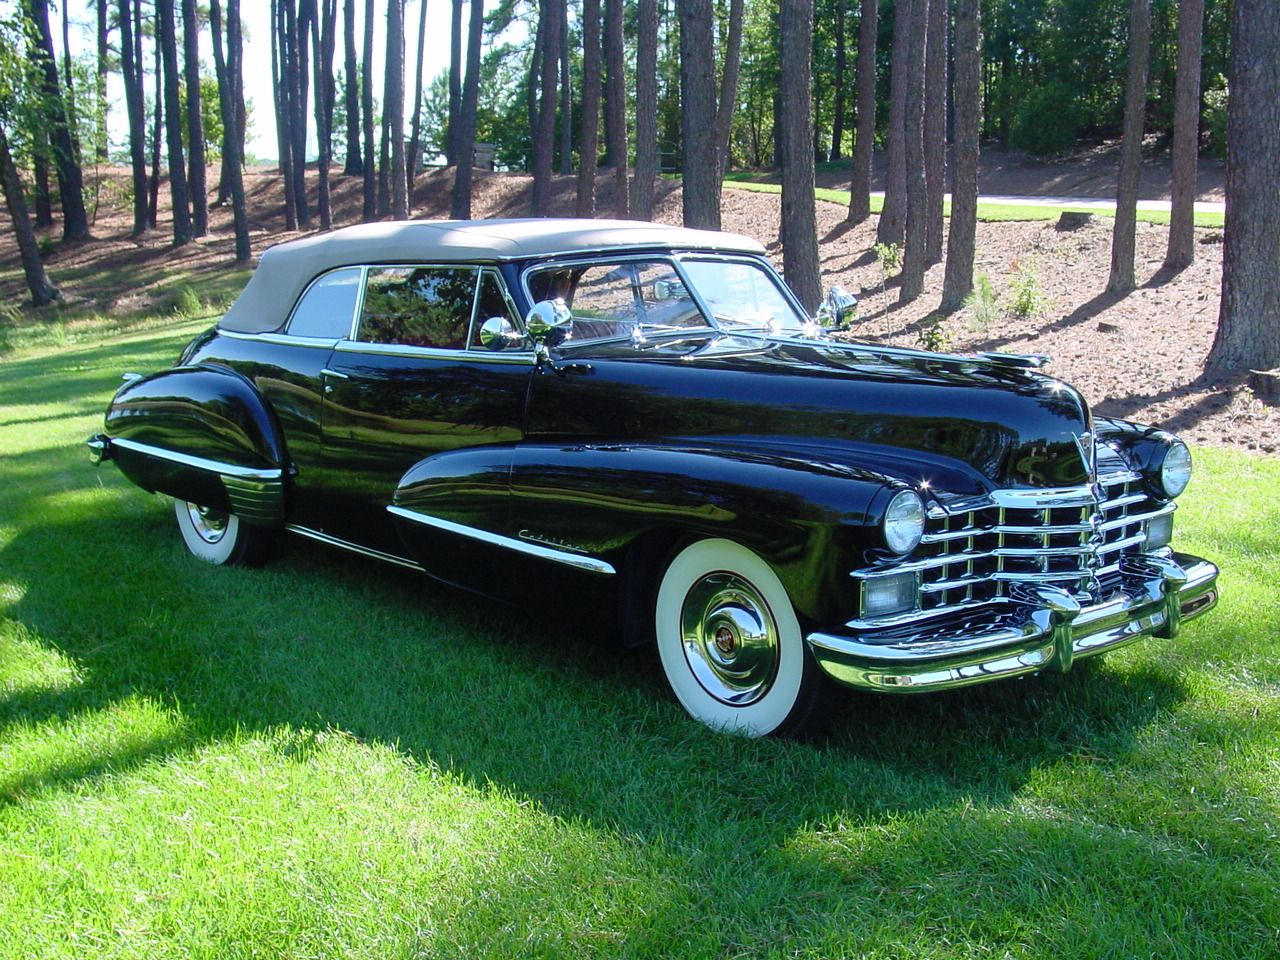 1947 Cadillac Series 62 Convertible Maintenance/restoration of old ...